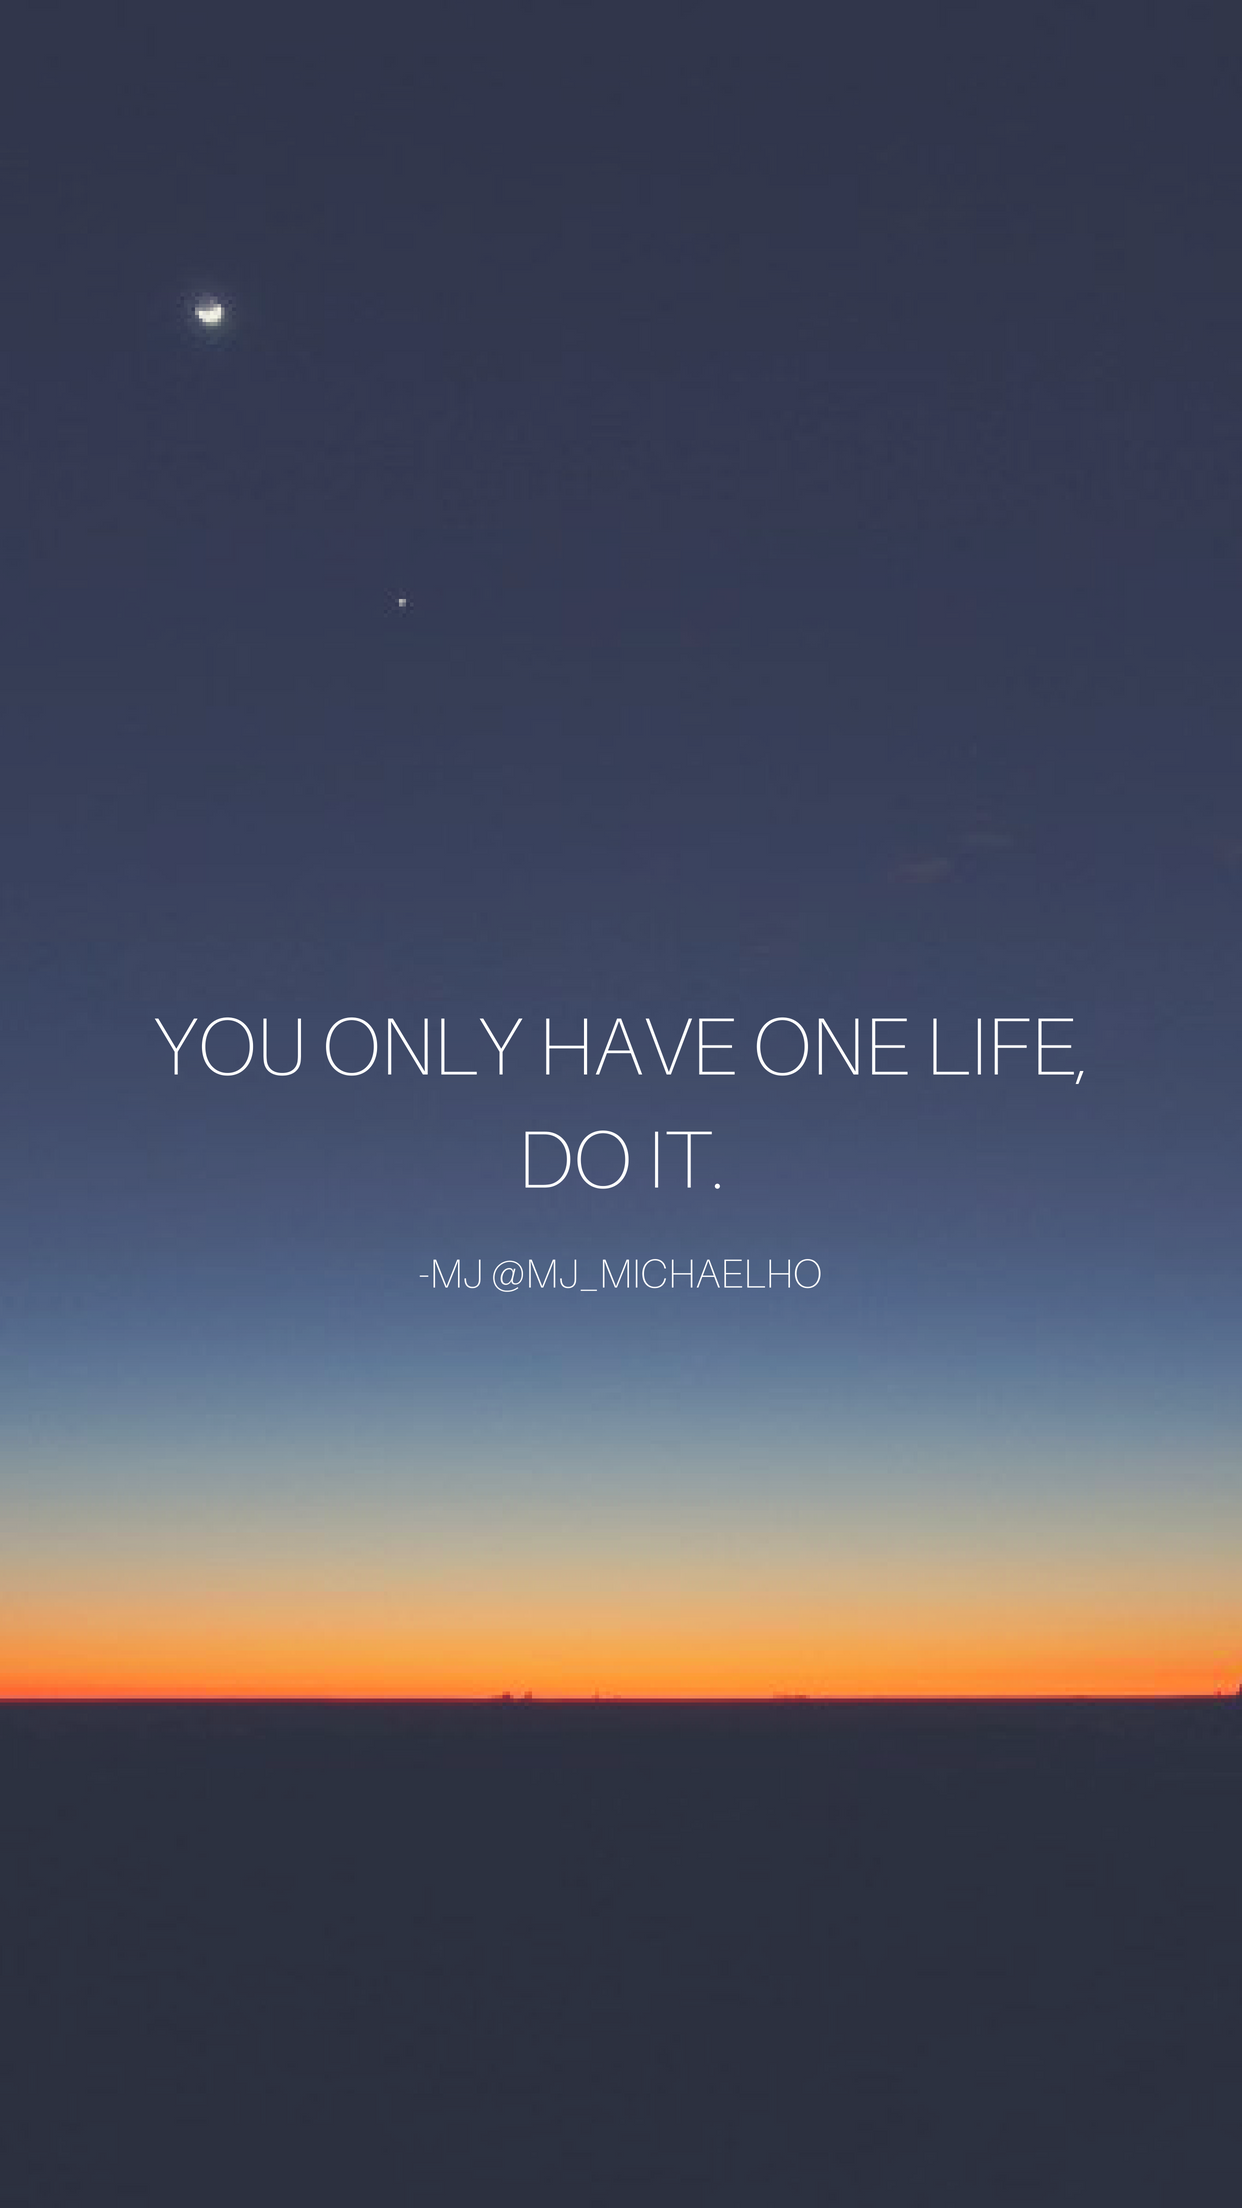 You only have one life, DO IT. Follow me on IG: instagram.com